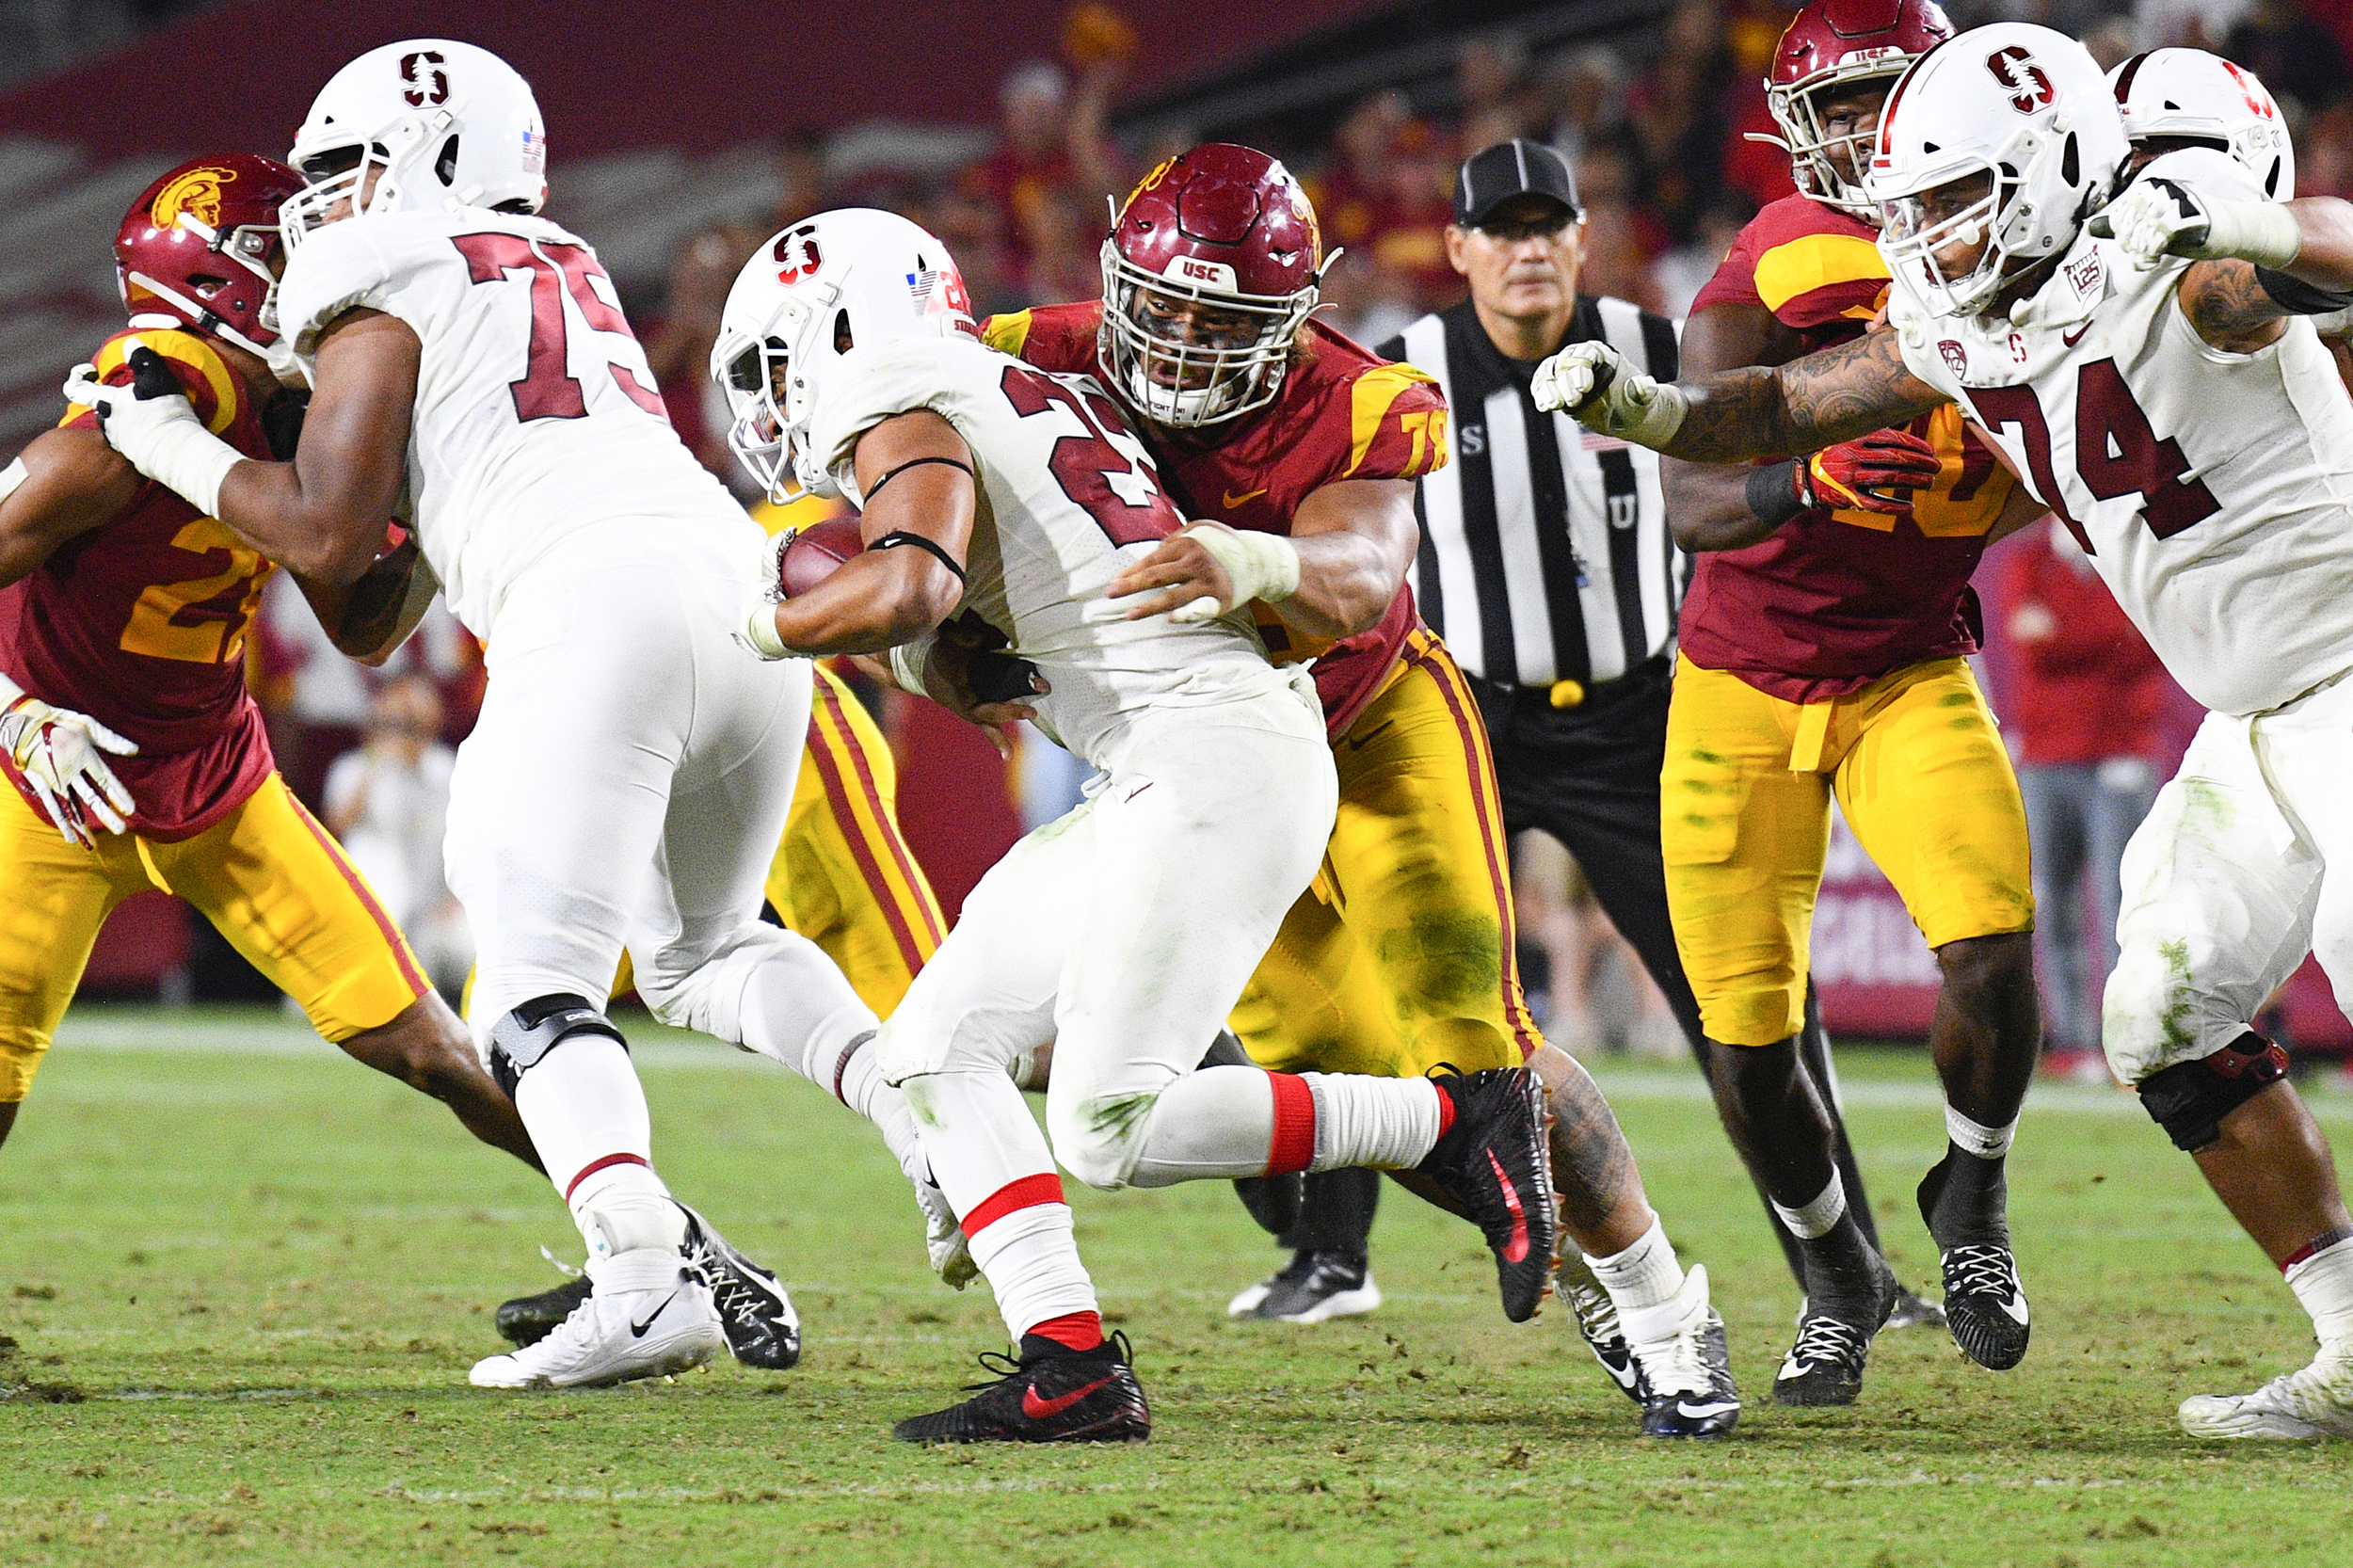 California-sets-up-clash-with-NCAA-by-passing-bill-allowing-college-athletes-to-get-paid